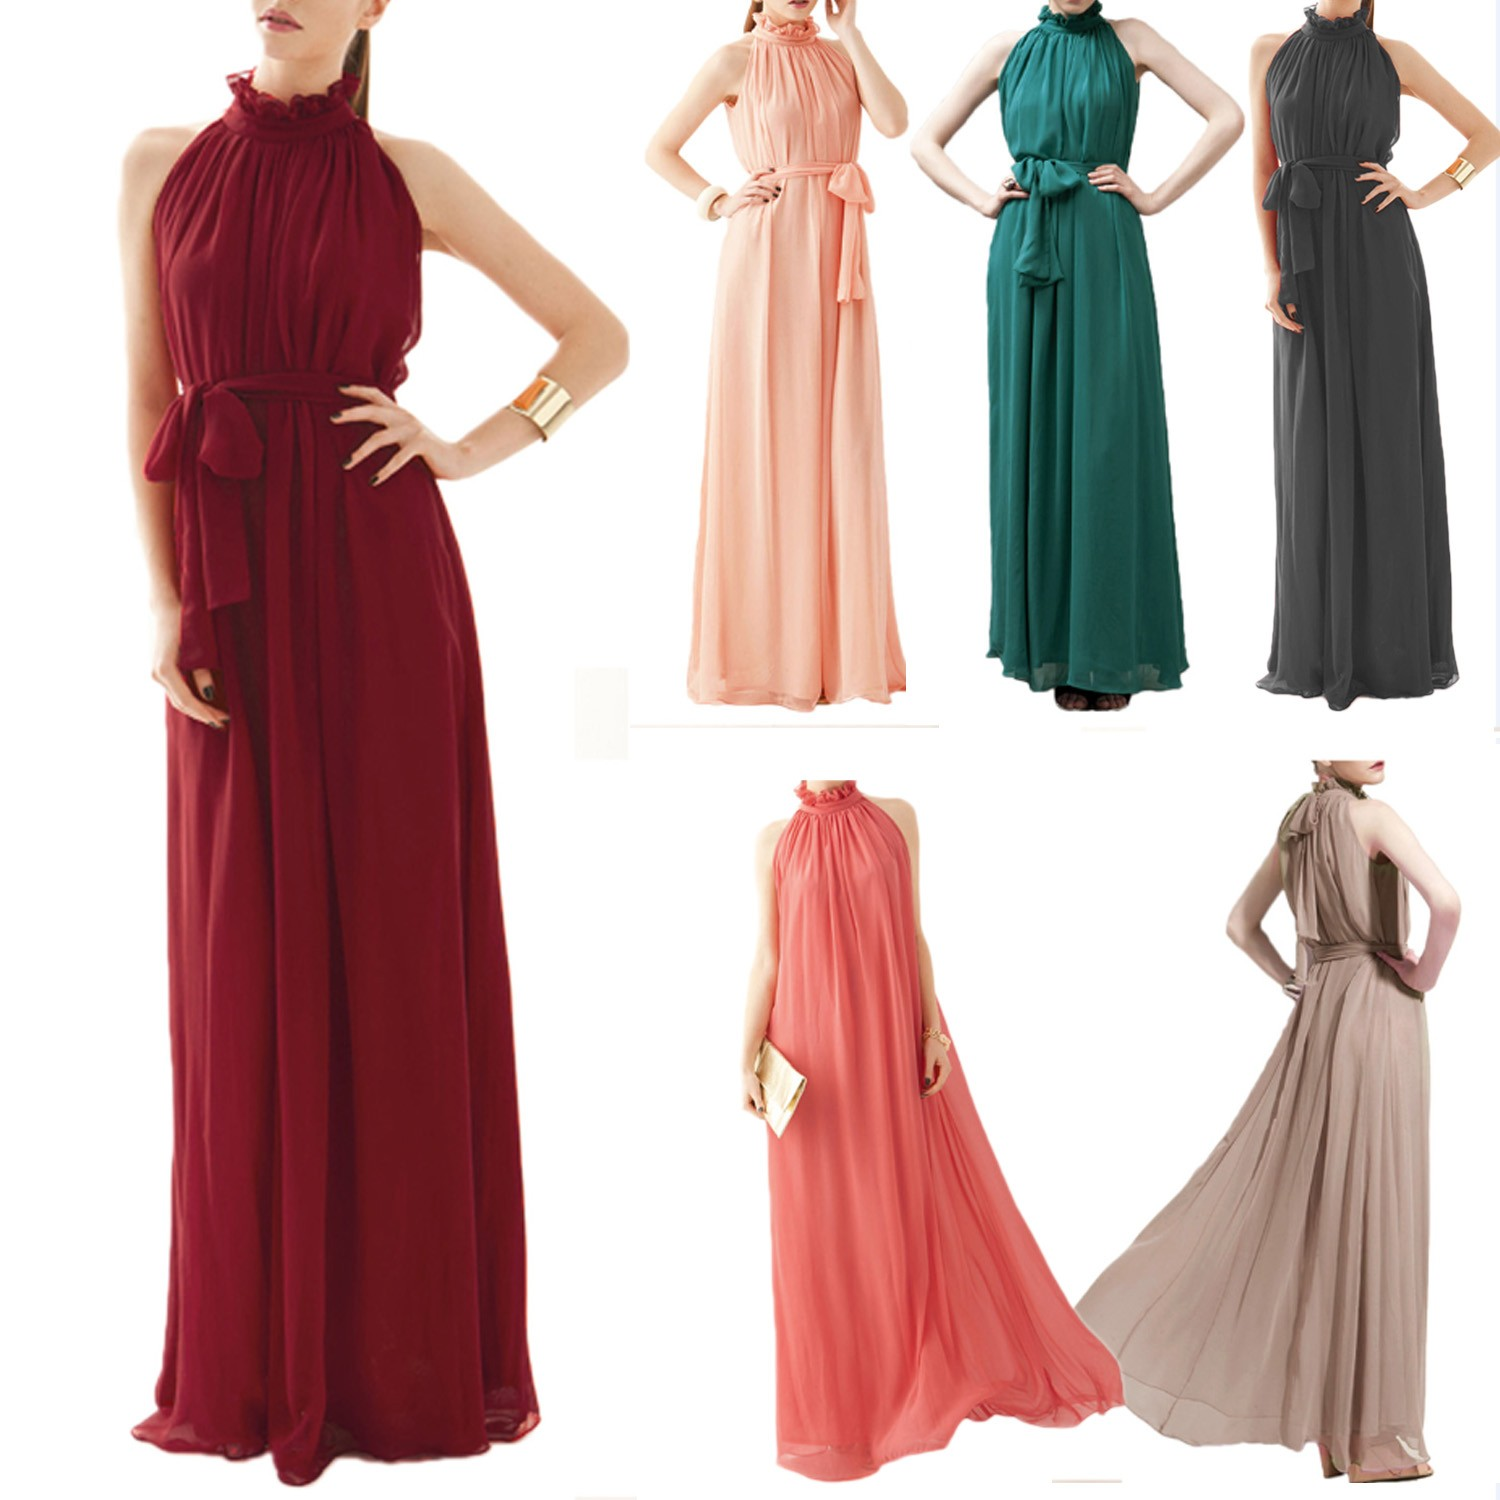 Vintage Cocktail Womens Boho Party Clubwear Chiffon Maxi Long Evening Dress